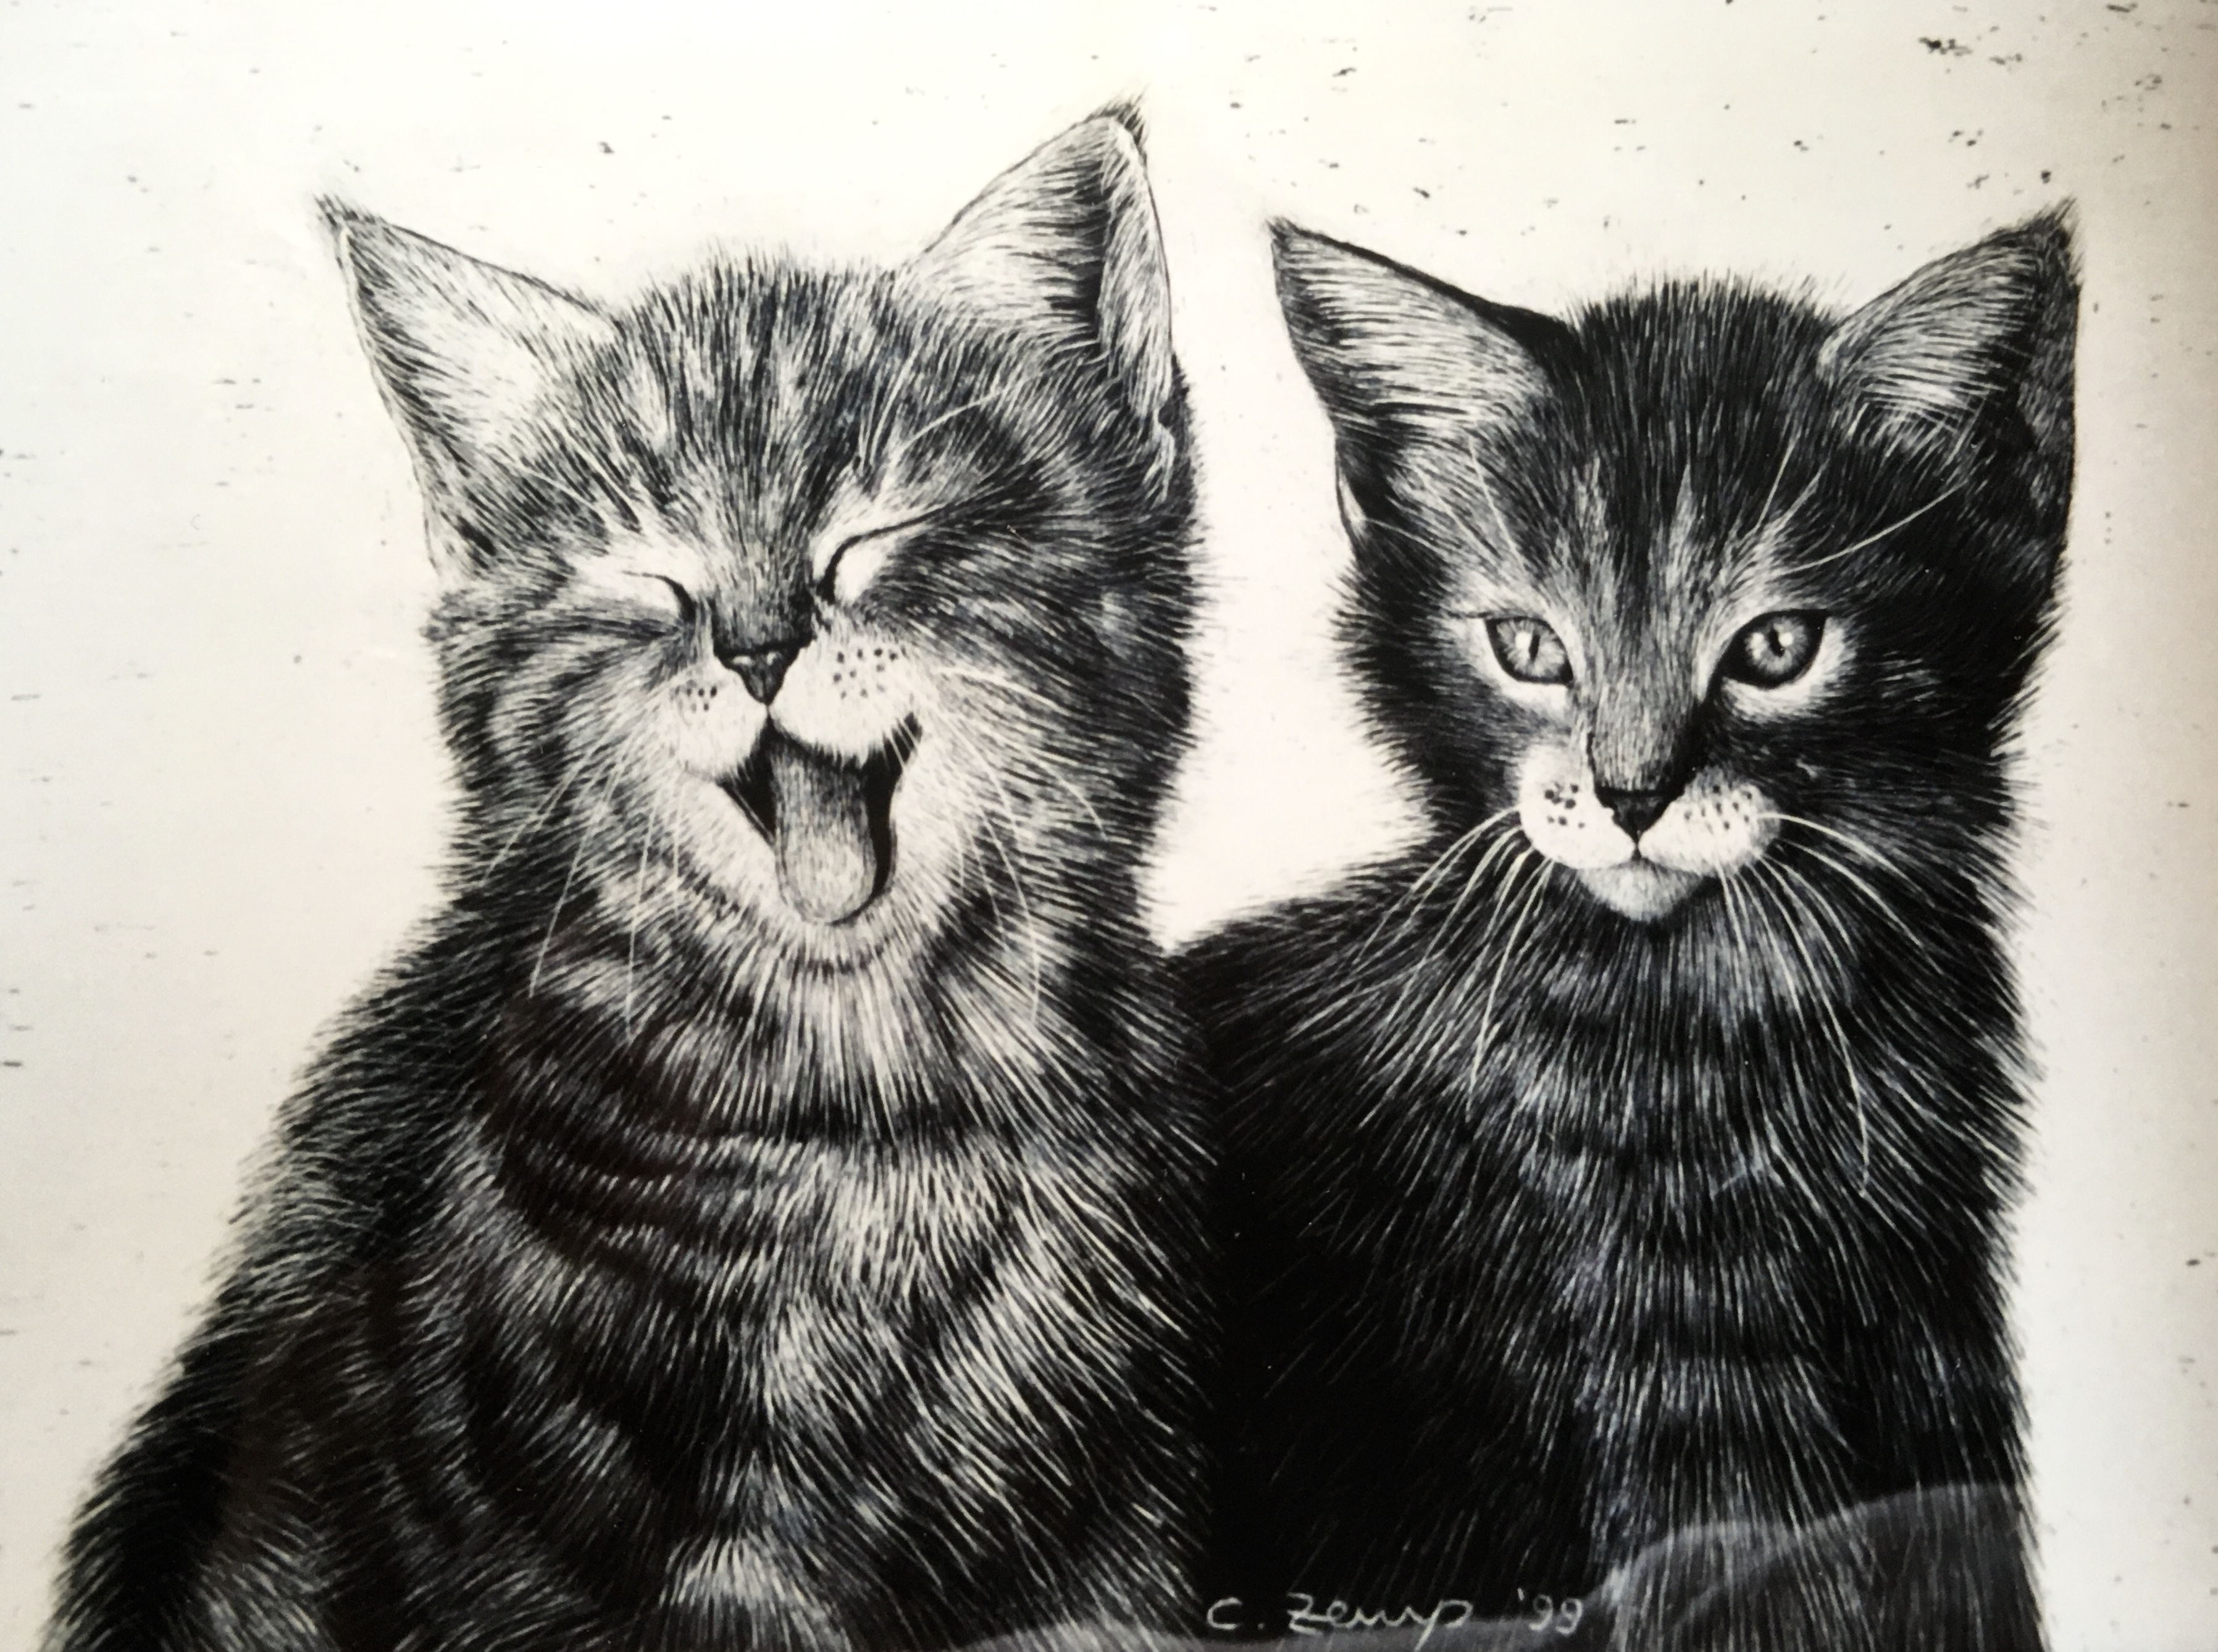 Young cats (verkauft / sold)